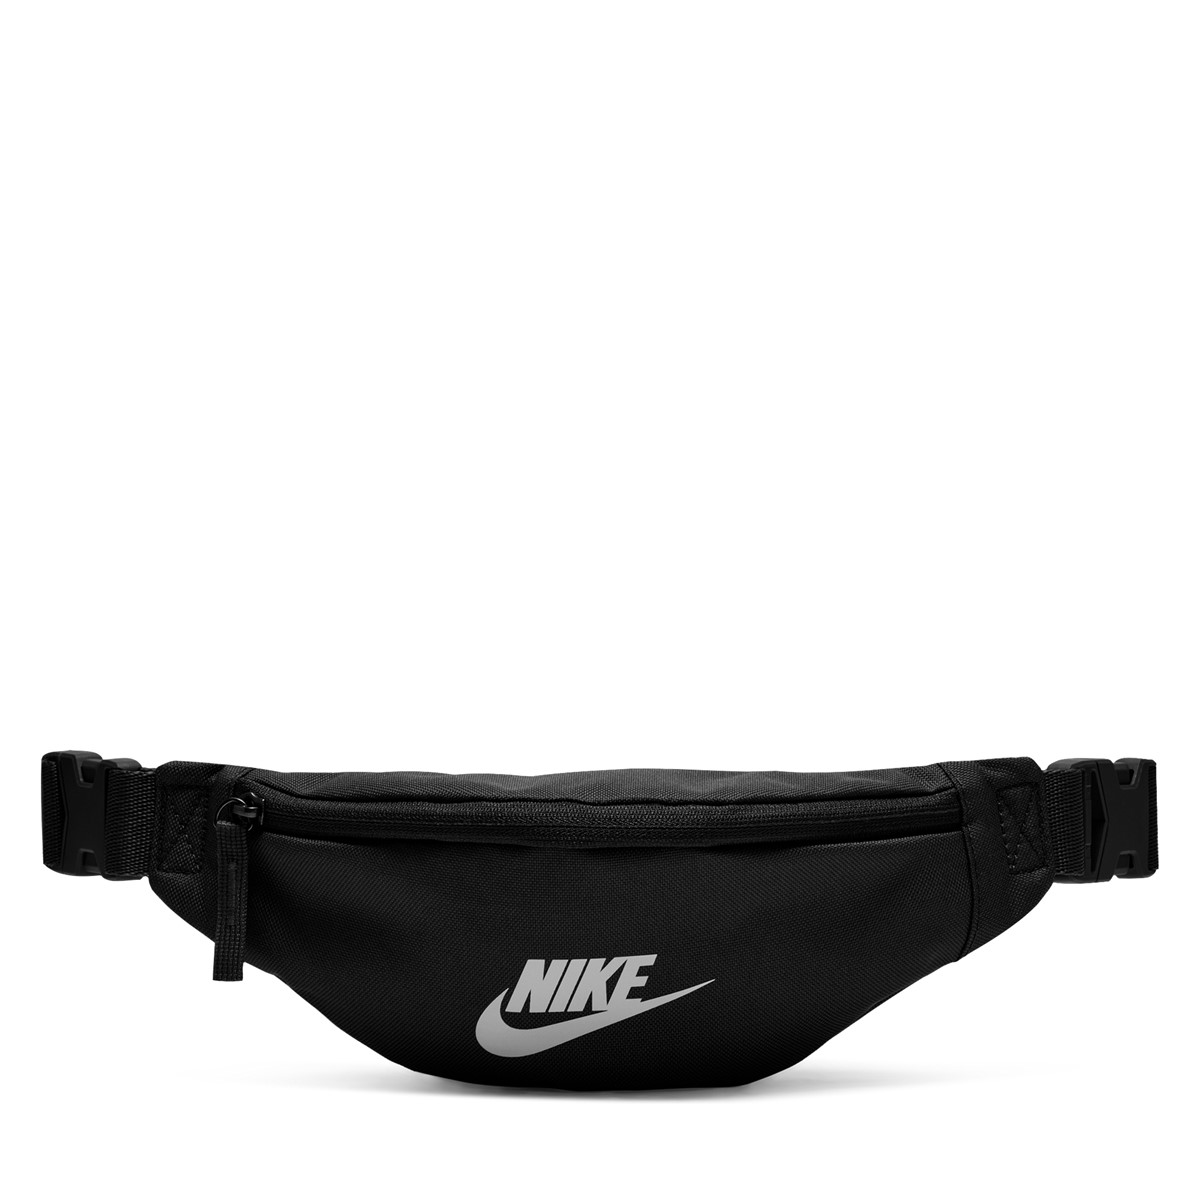 Heritage Fanny Pack in Black